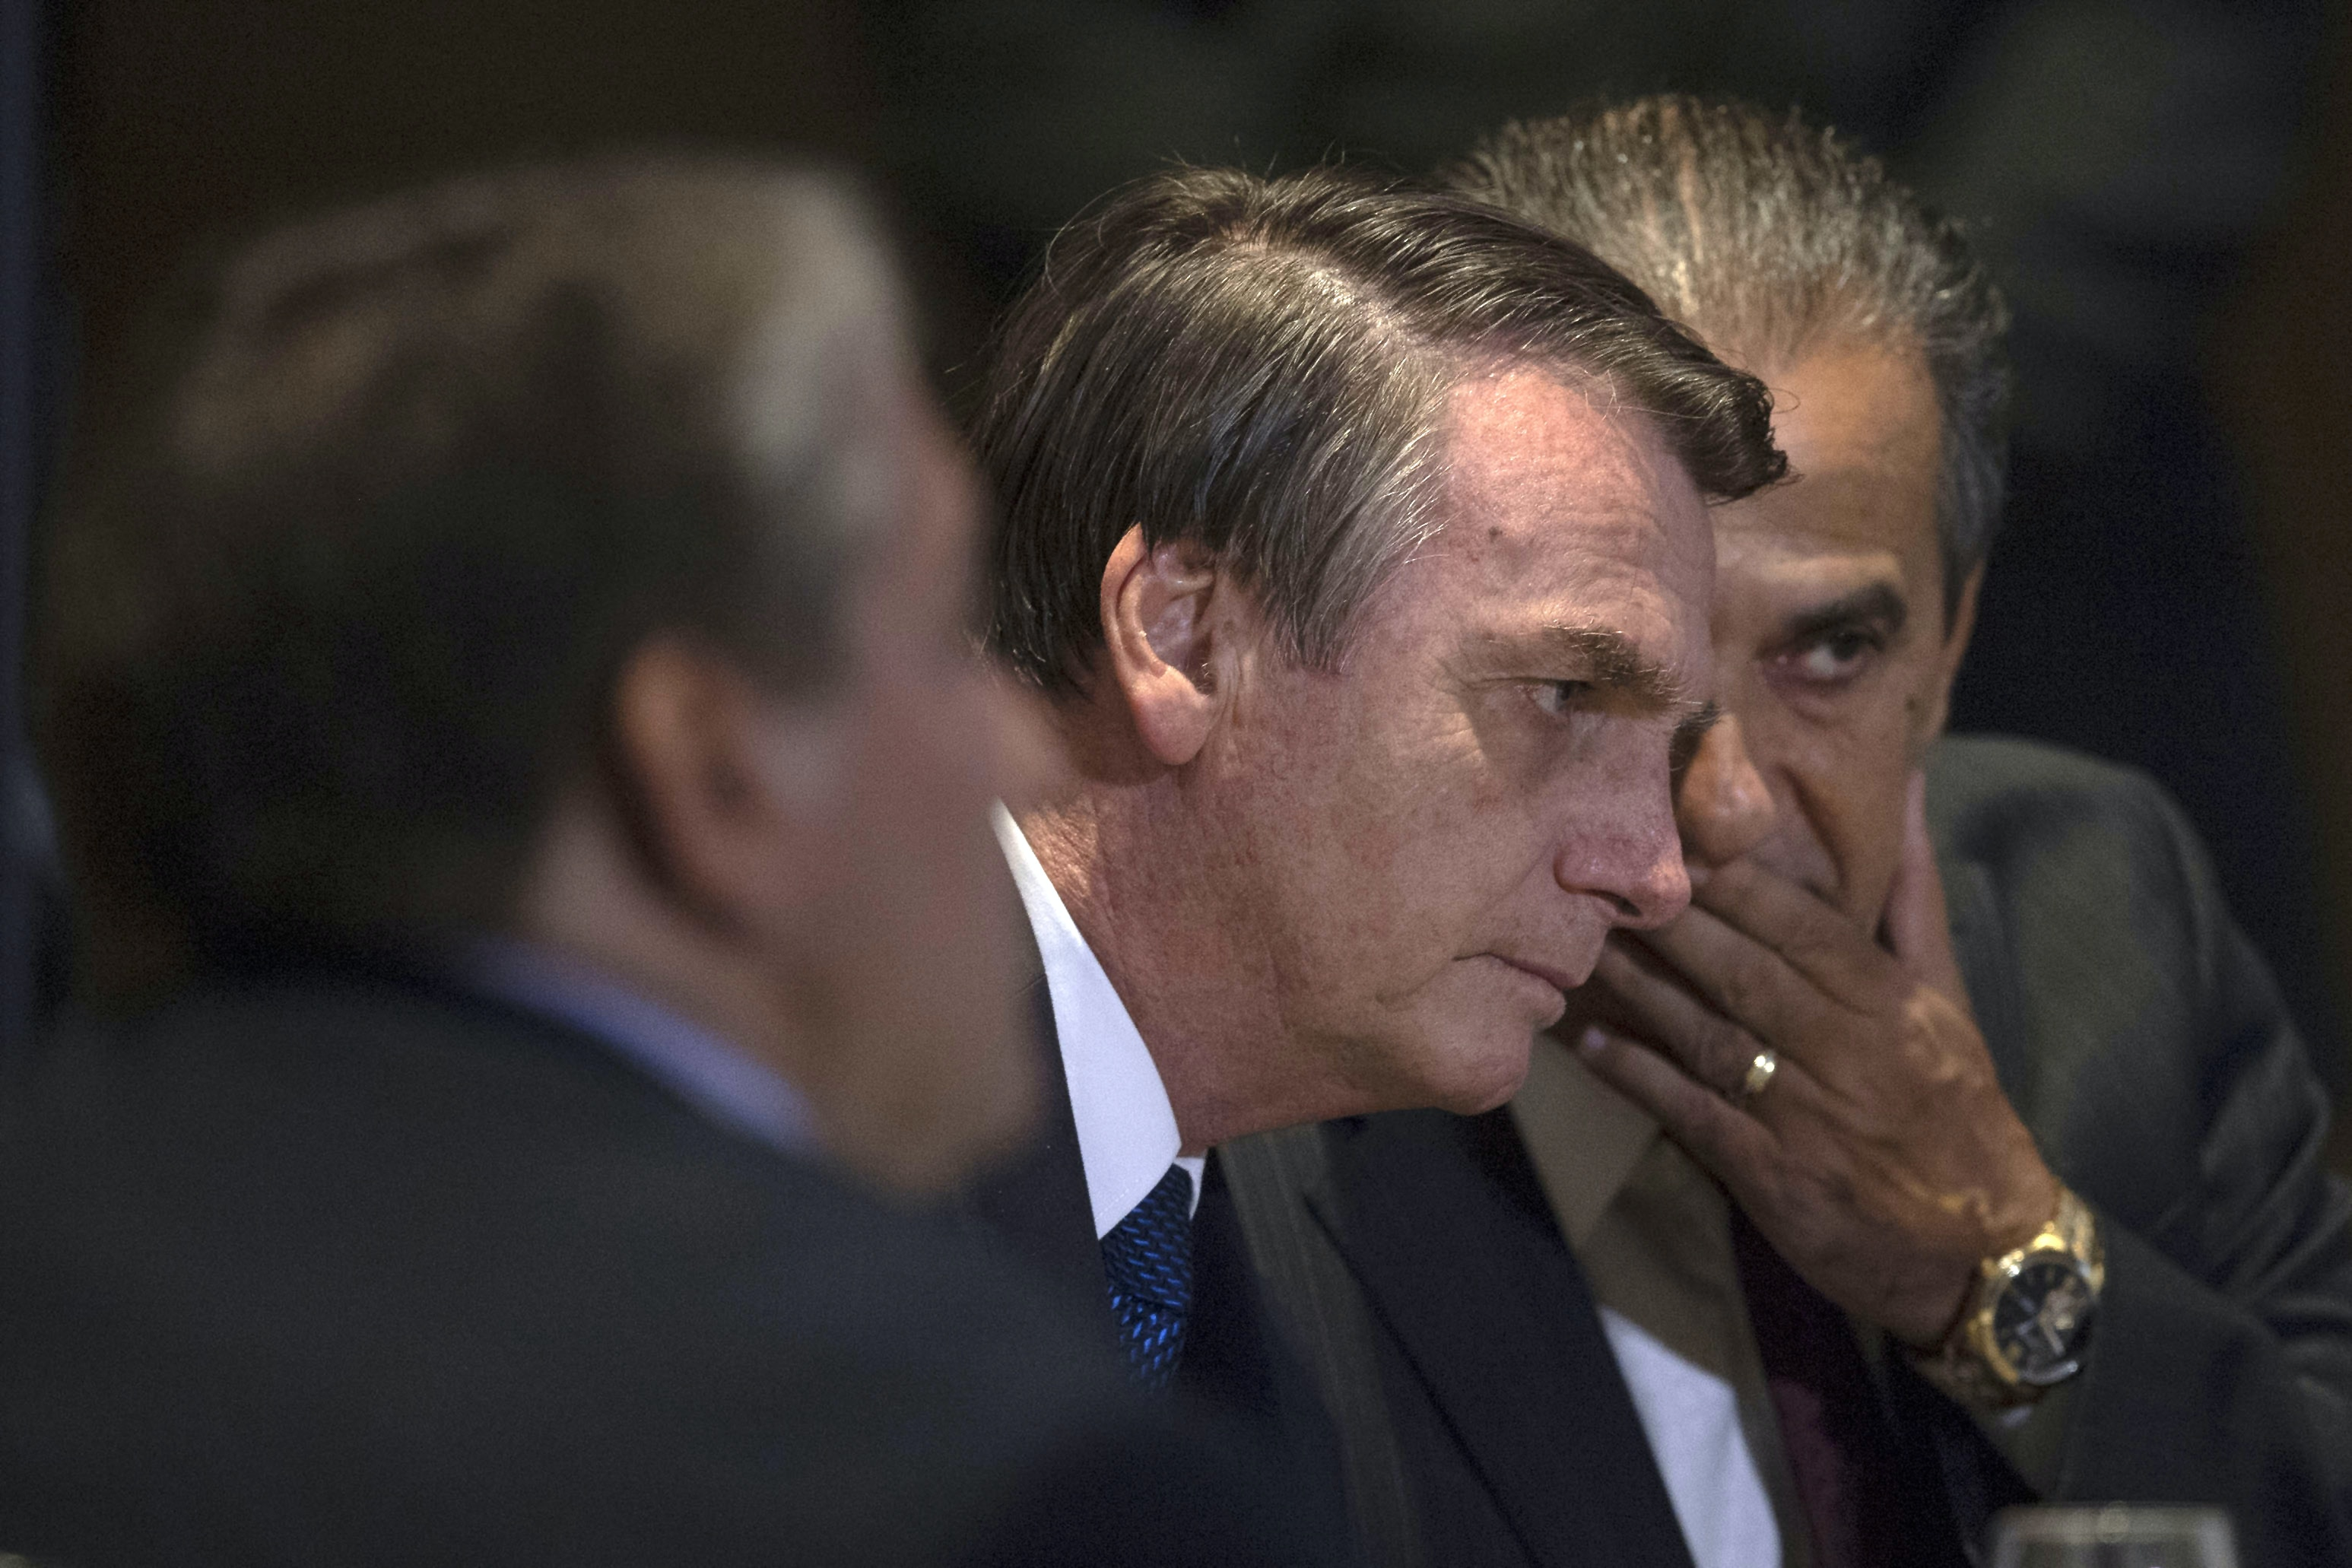 Brazilian President Jair Bolsonaro speaks with Brazilian Congressman and Bishop Silas Malafaia (R) during a meeting with evangelical leaders at the Hilton Barra Hotel, in Barra da Tijuca neighborhood, Rio de Janeiro, Brazil on April 11, 2019. (Photo by Mauro Pimentel / AFP)        (Photo credit should read MAURO PIMENTEL/AFP via Getty Images)